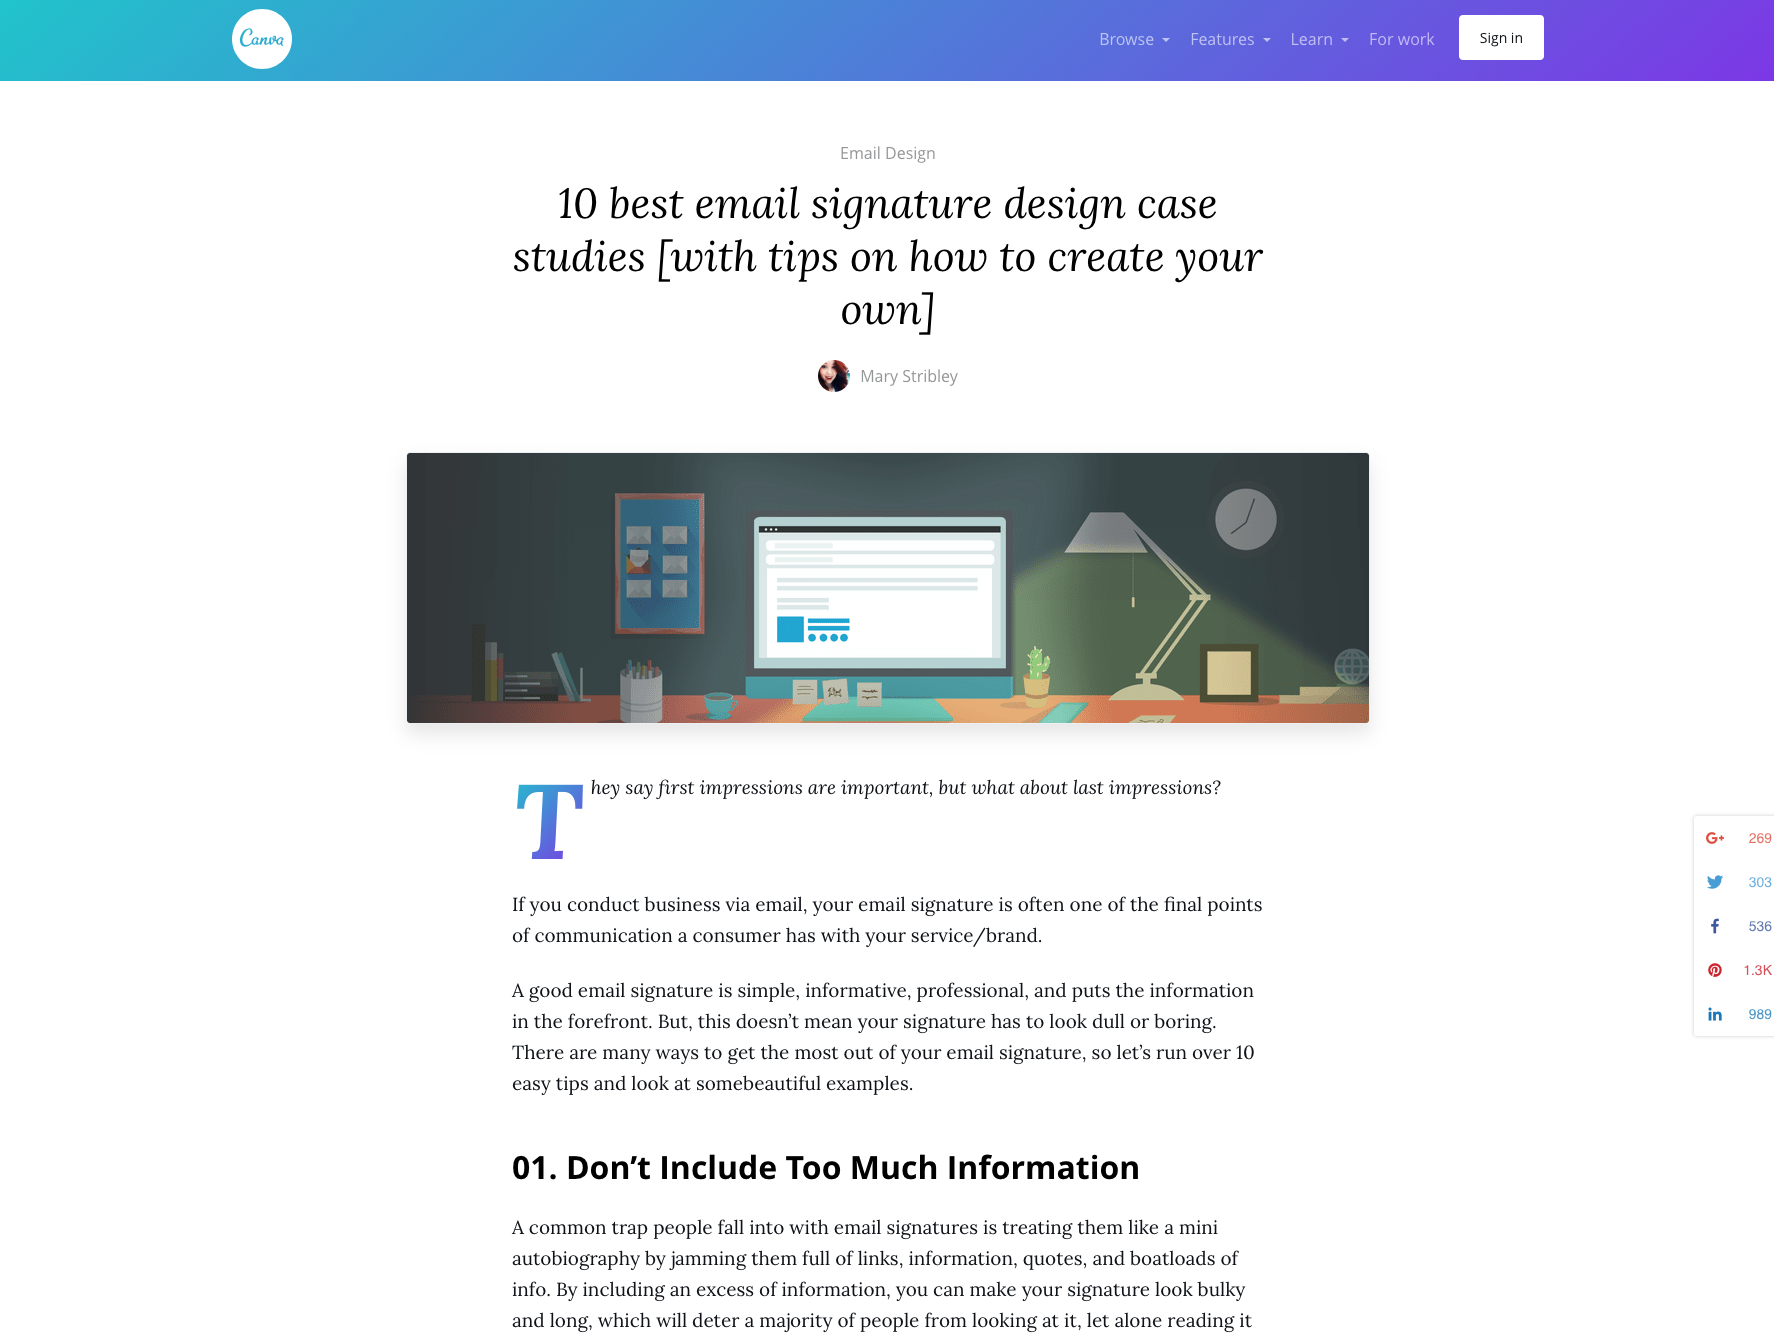 Canva Blog Post on Email Signatures